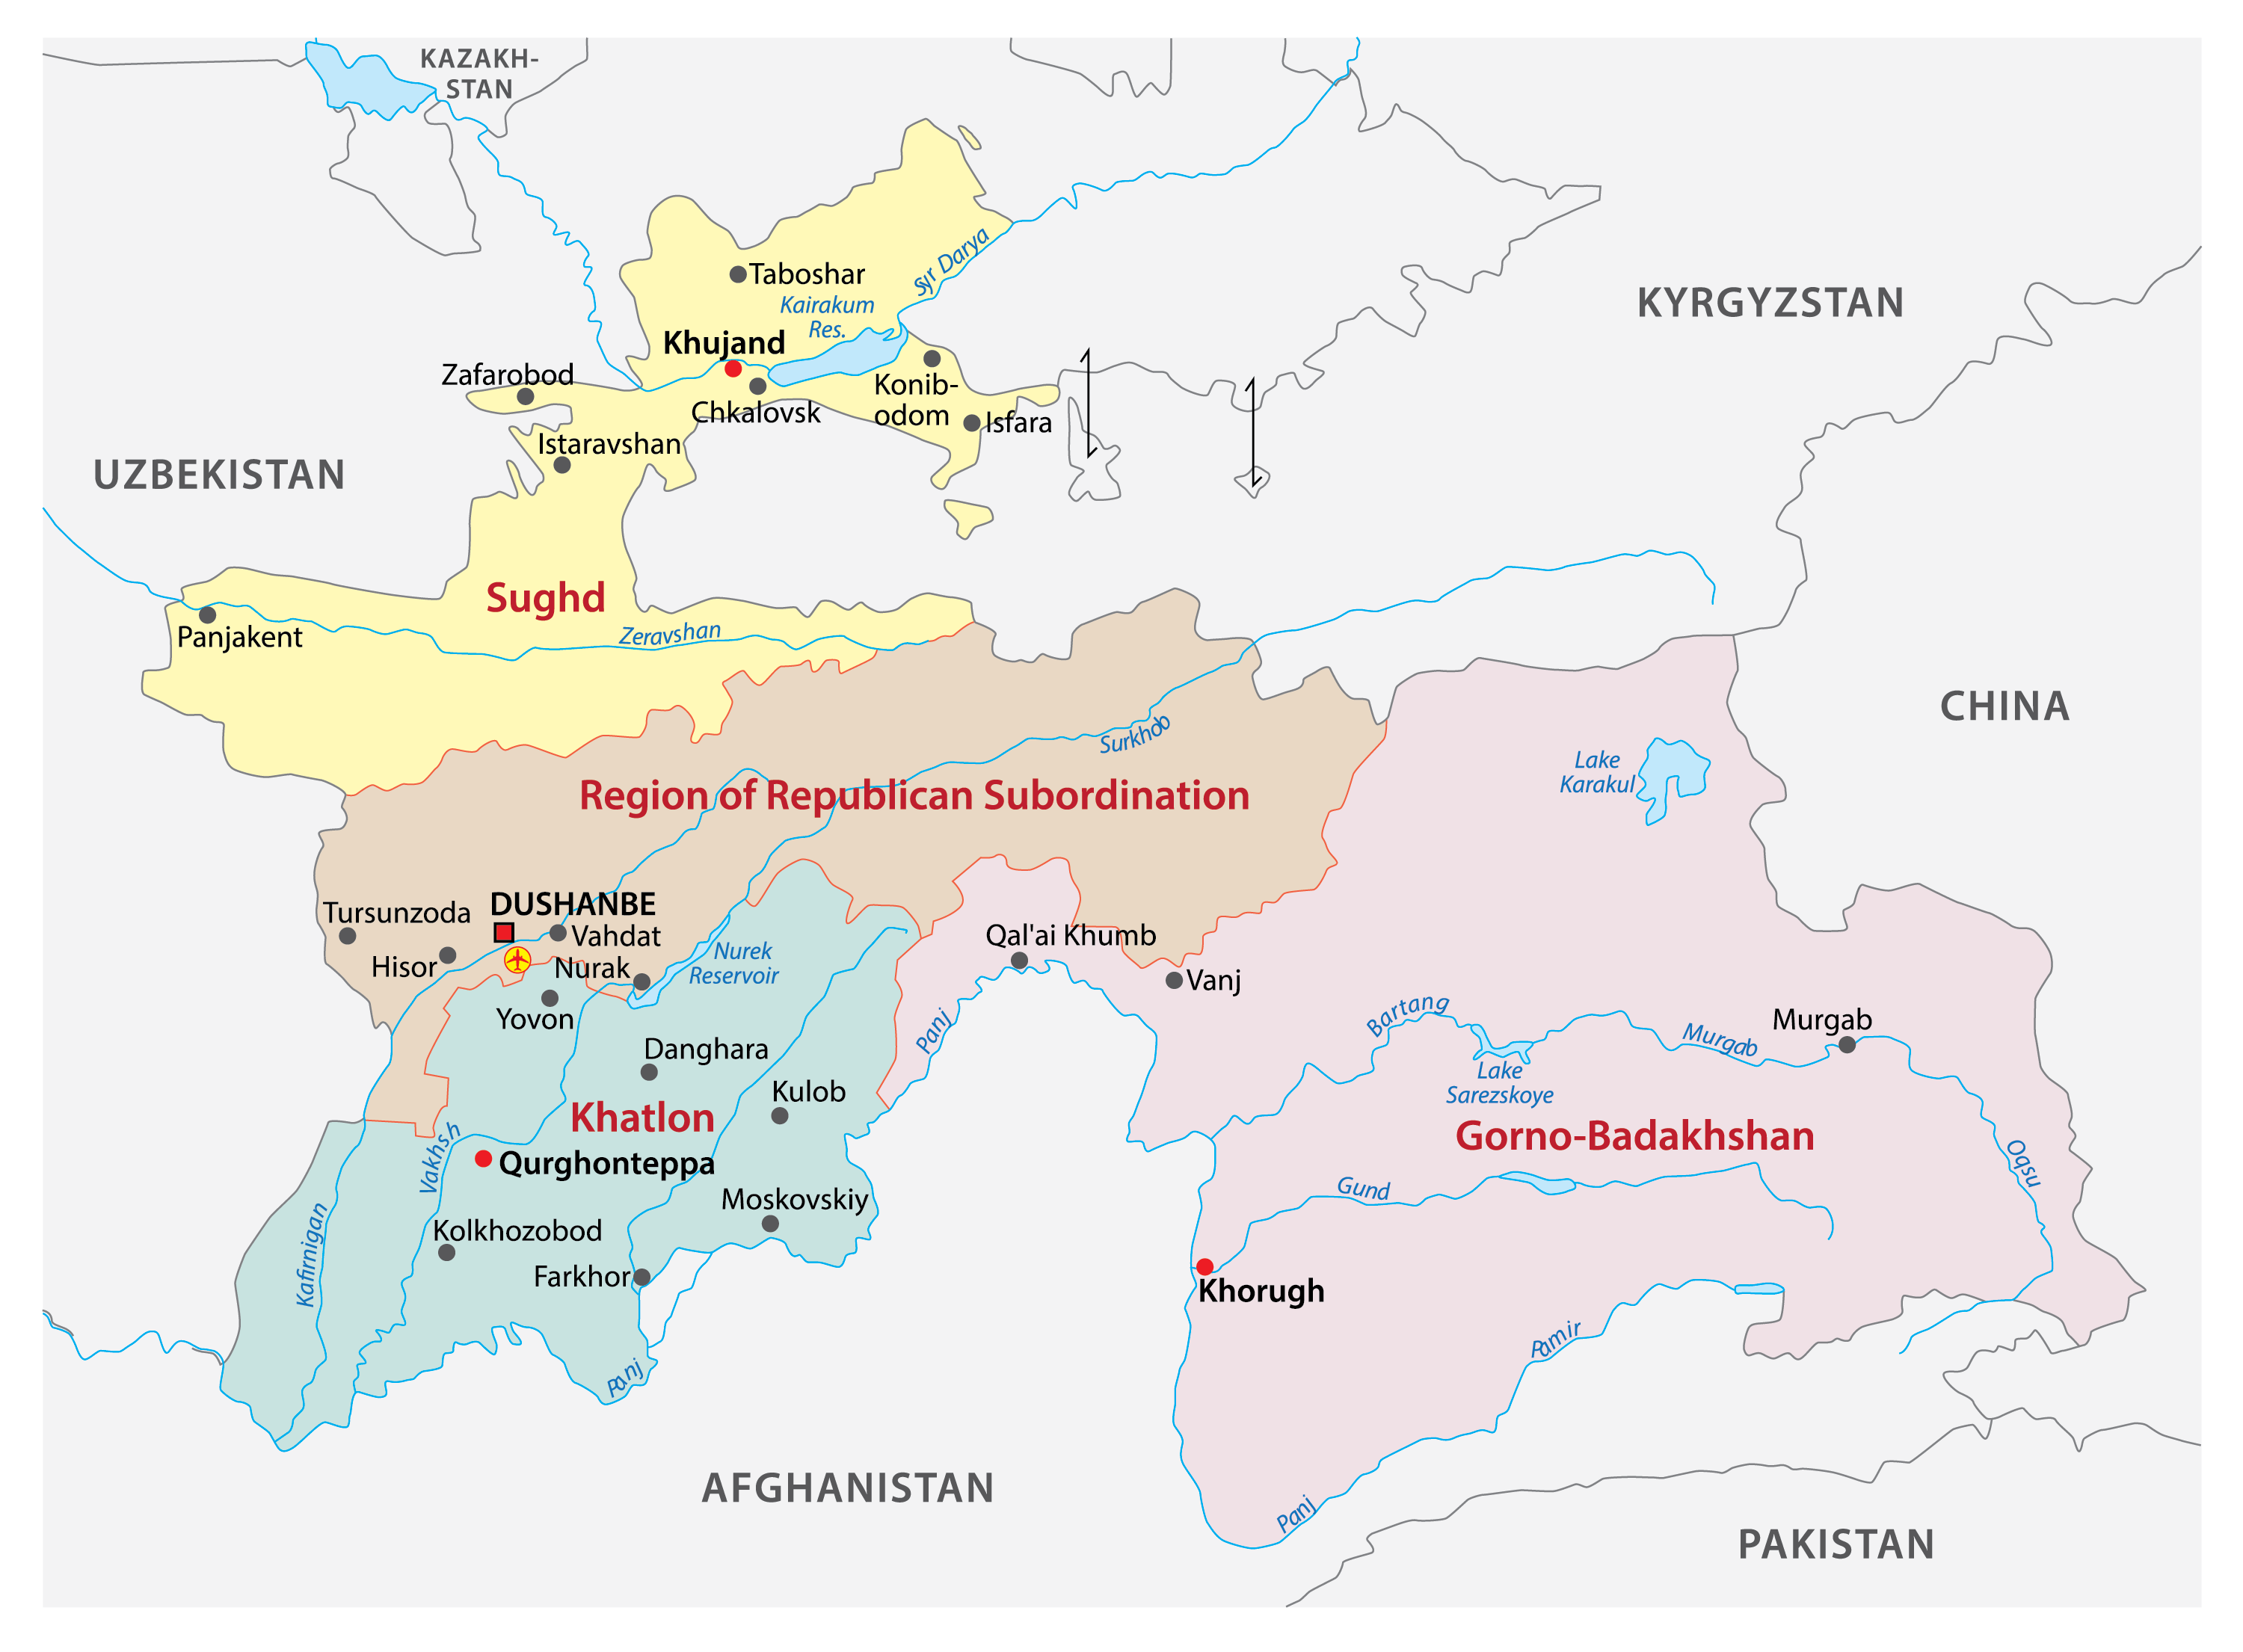 The Political Map of Tajikistan displaying its four provinces, their capitals and the capital city of Dushanbe.